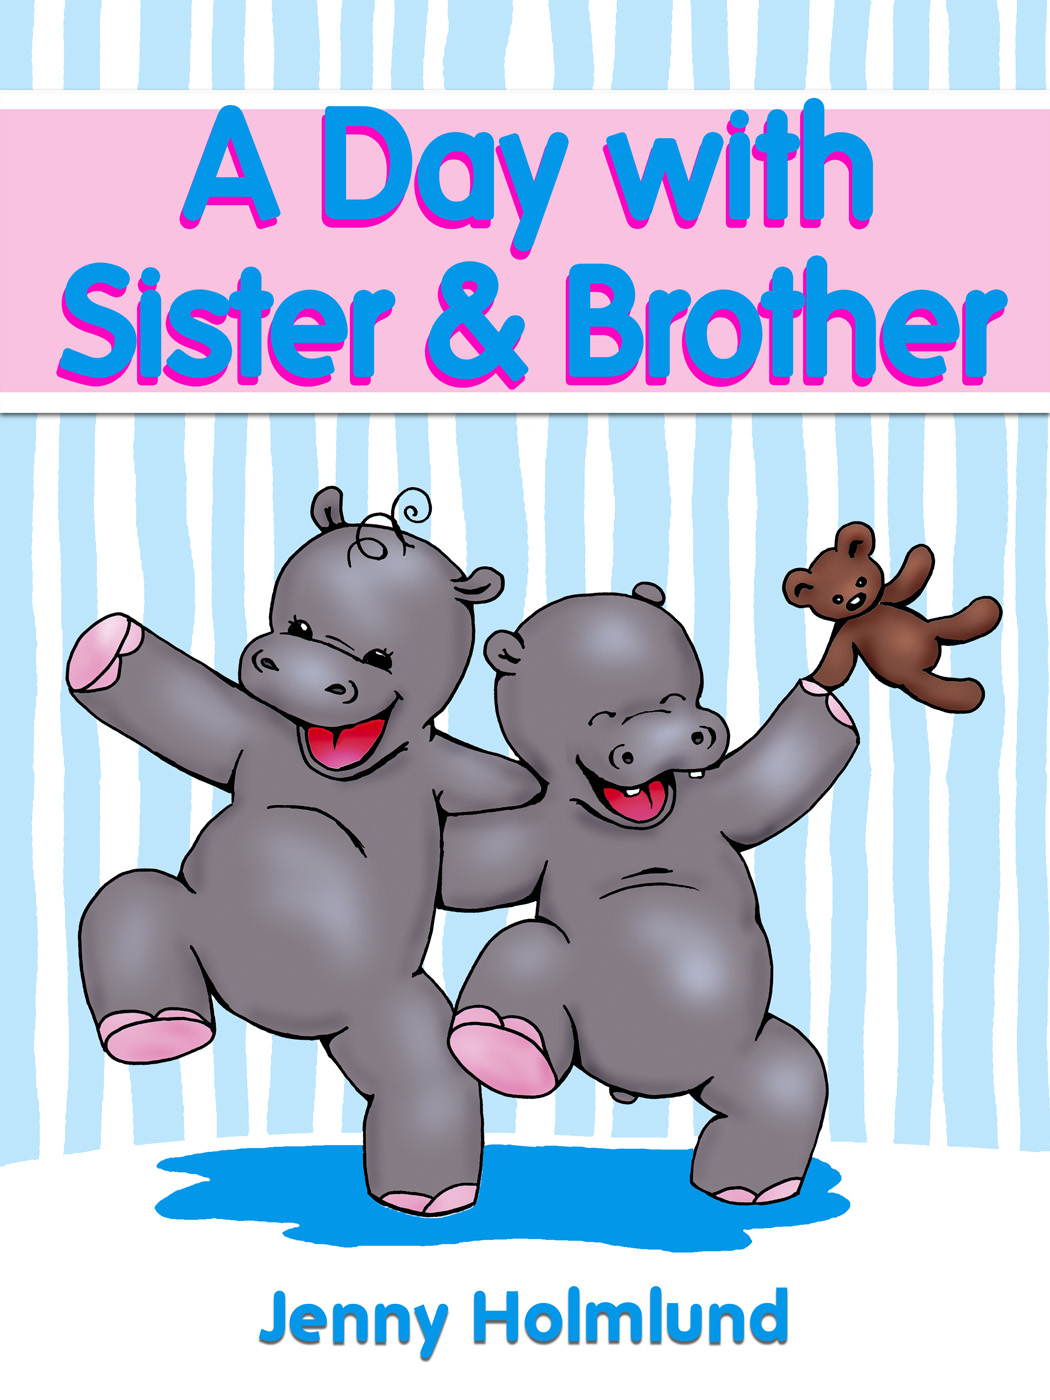 A Day with Sister & Brother By: Jenny Holmlund